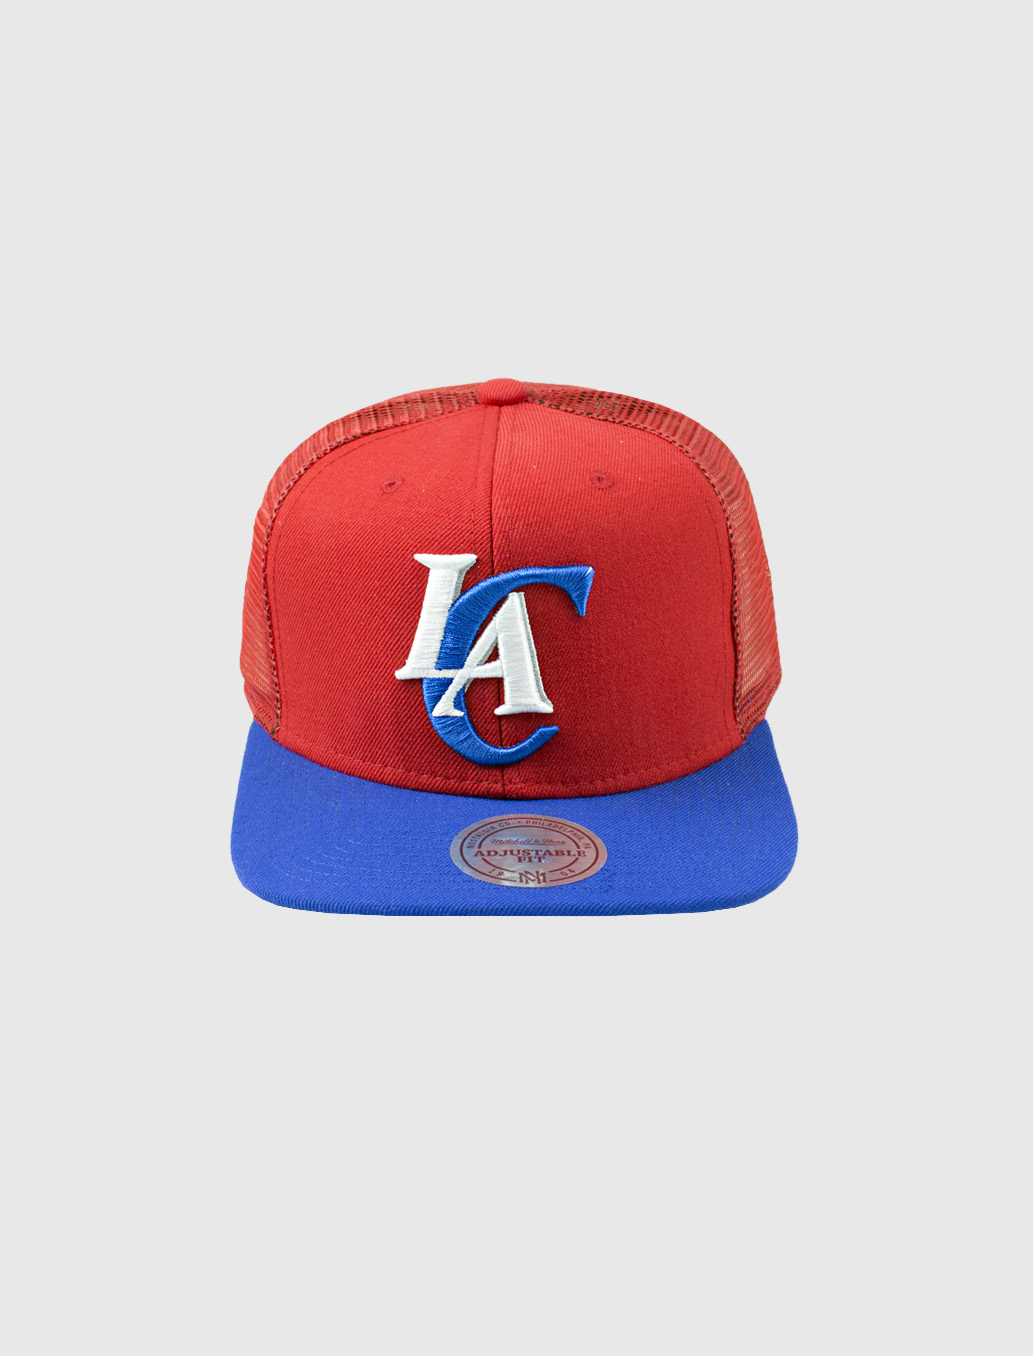 Бейсболка Mitchell & Ness UNTRUCK LOS ANGELES CLIPPERS